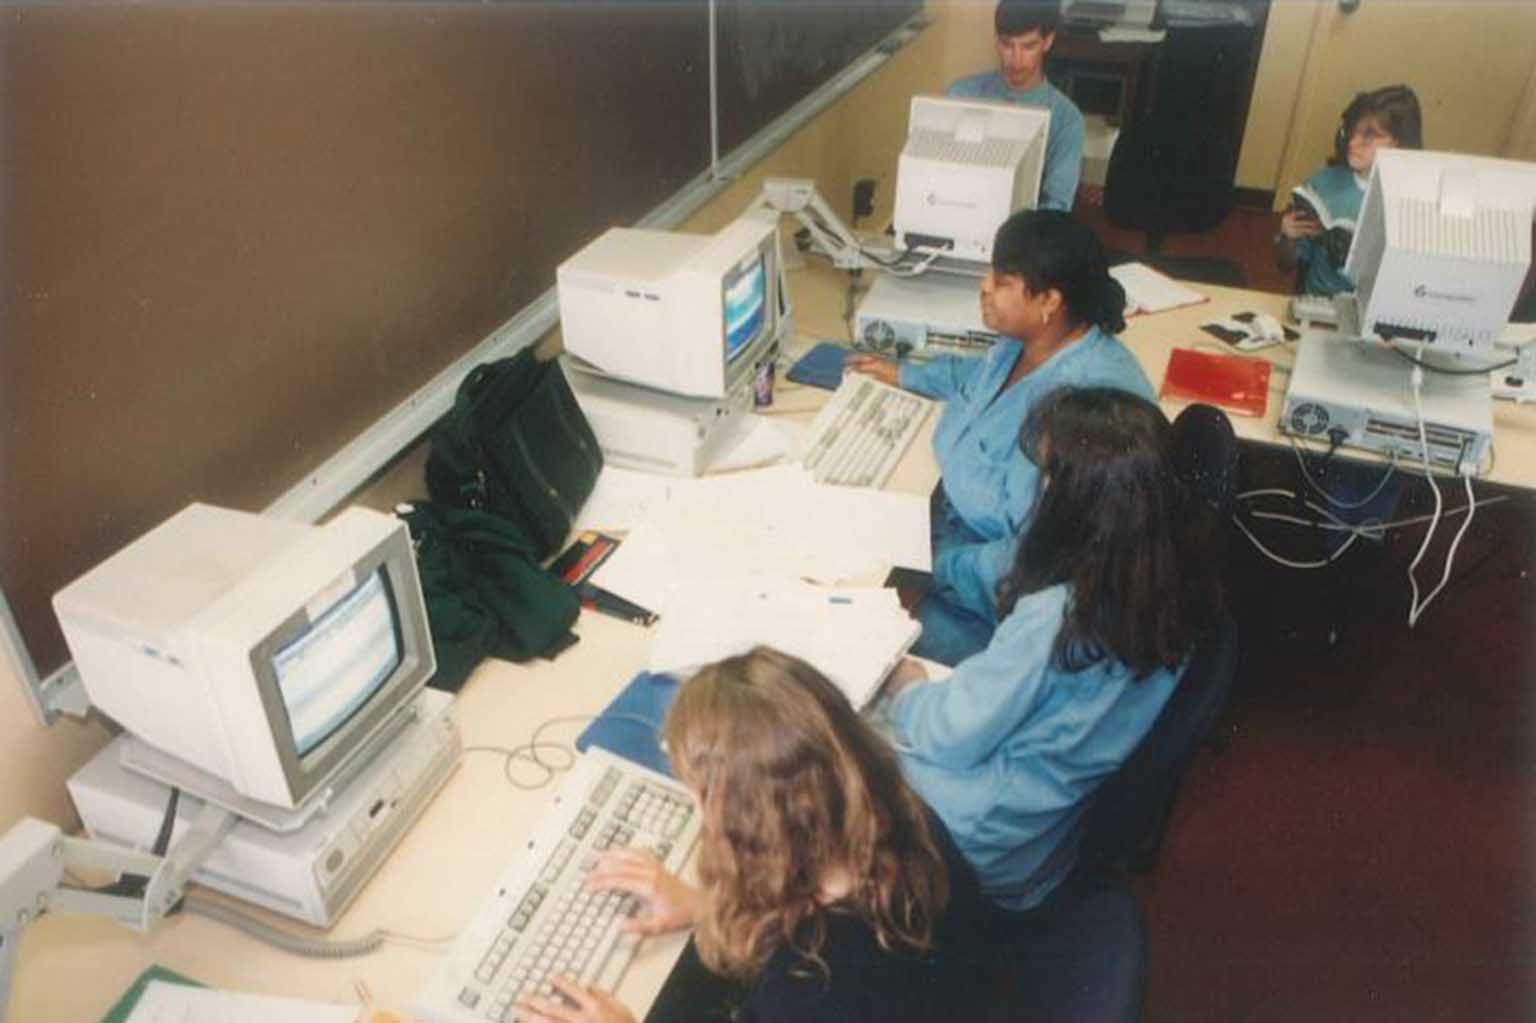 Overhead view of folks using outdated computers